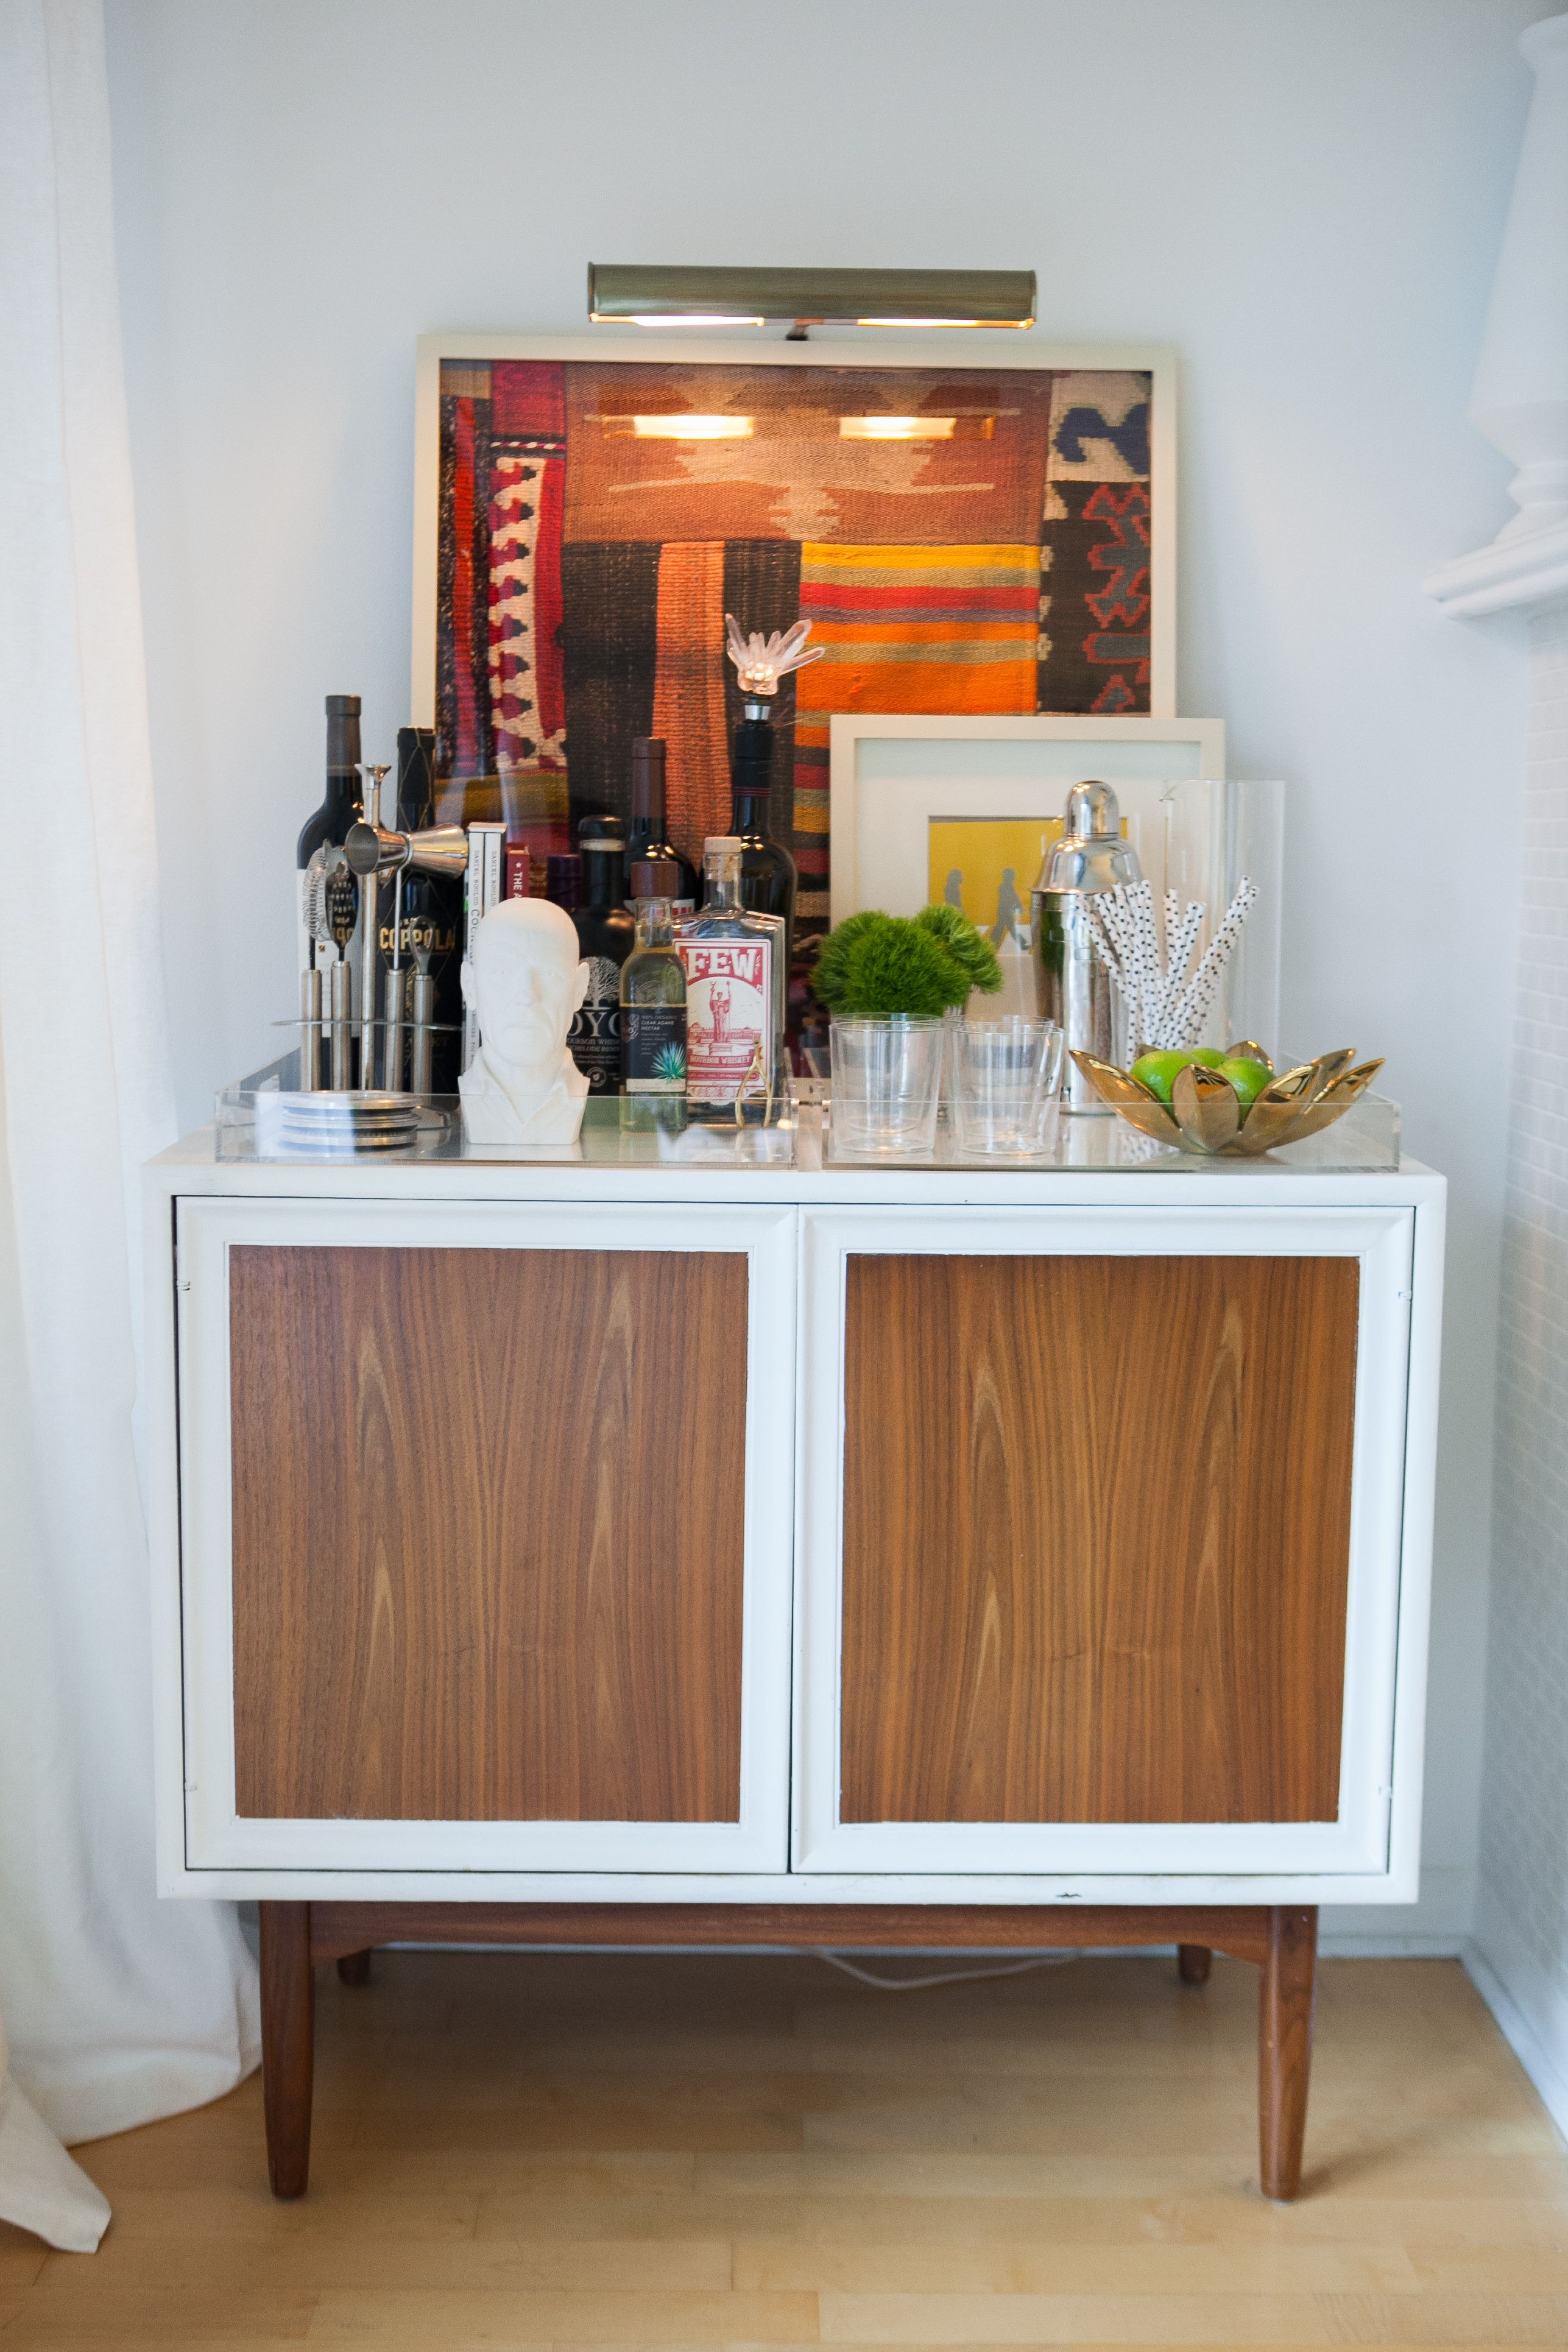 Amelia Canham Eaton S Chicago Apartment Bar Cart Mid Century Modern Decor Living Room Photography By Jennifer Kathryn